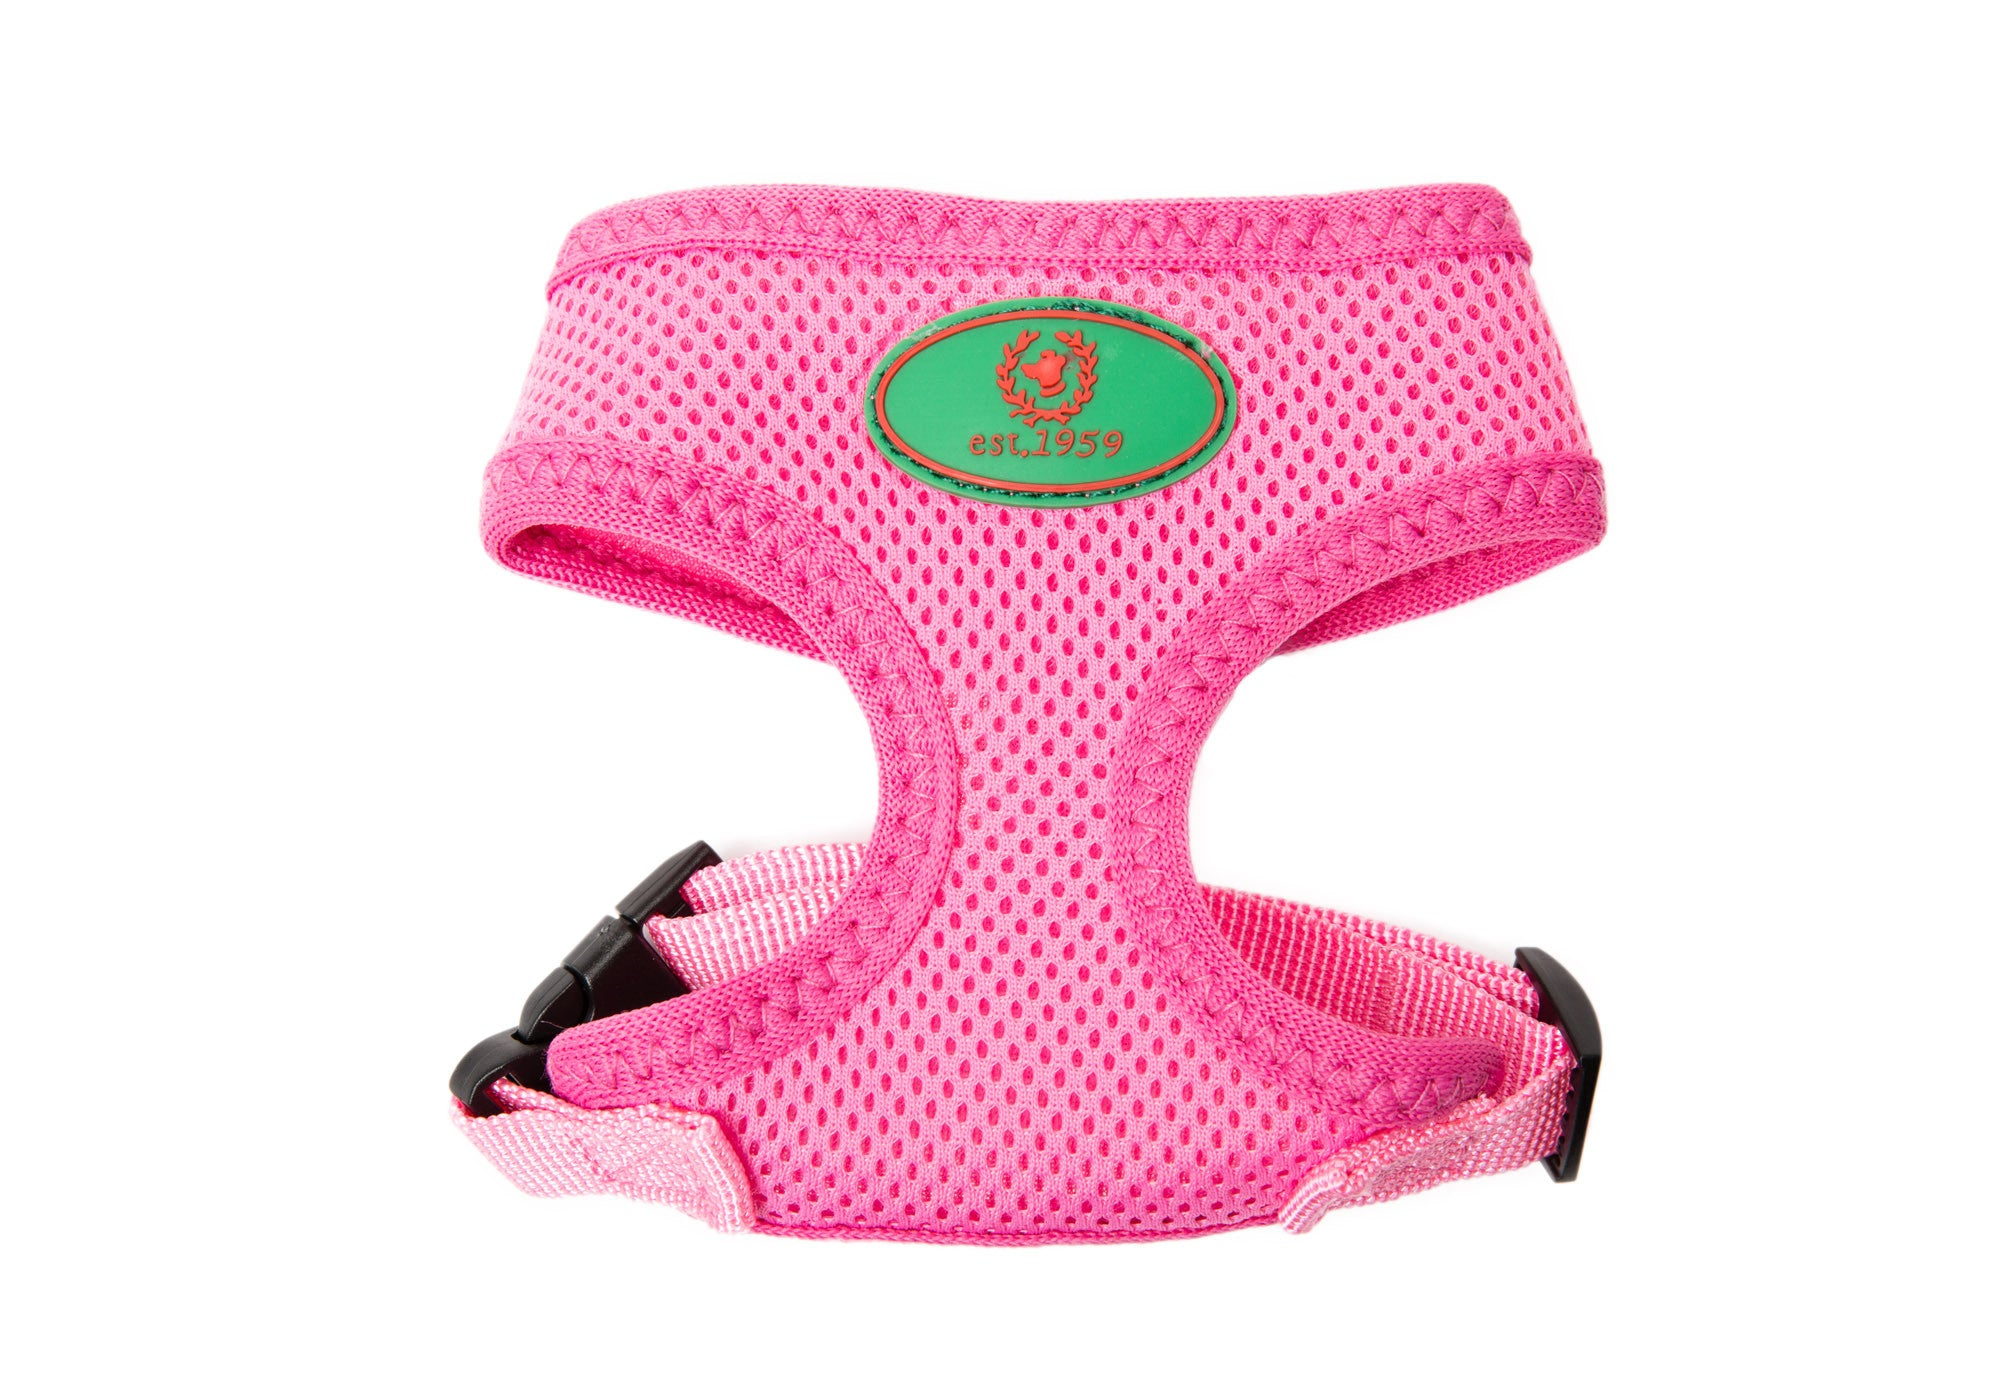 Soft Dog Harnesses| Mesh Harness | 7 Color Options